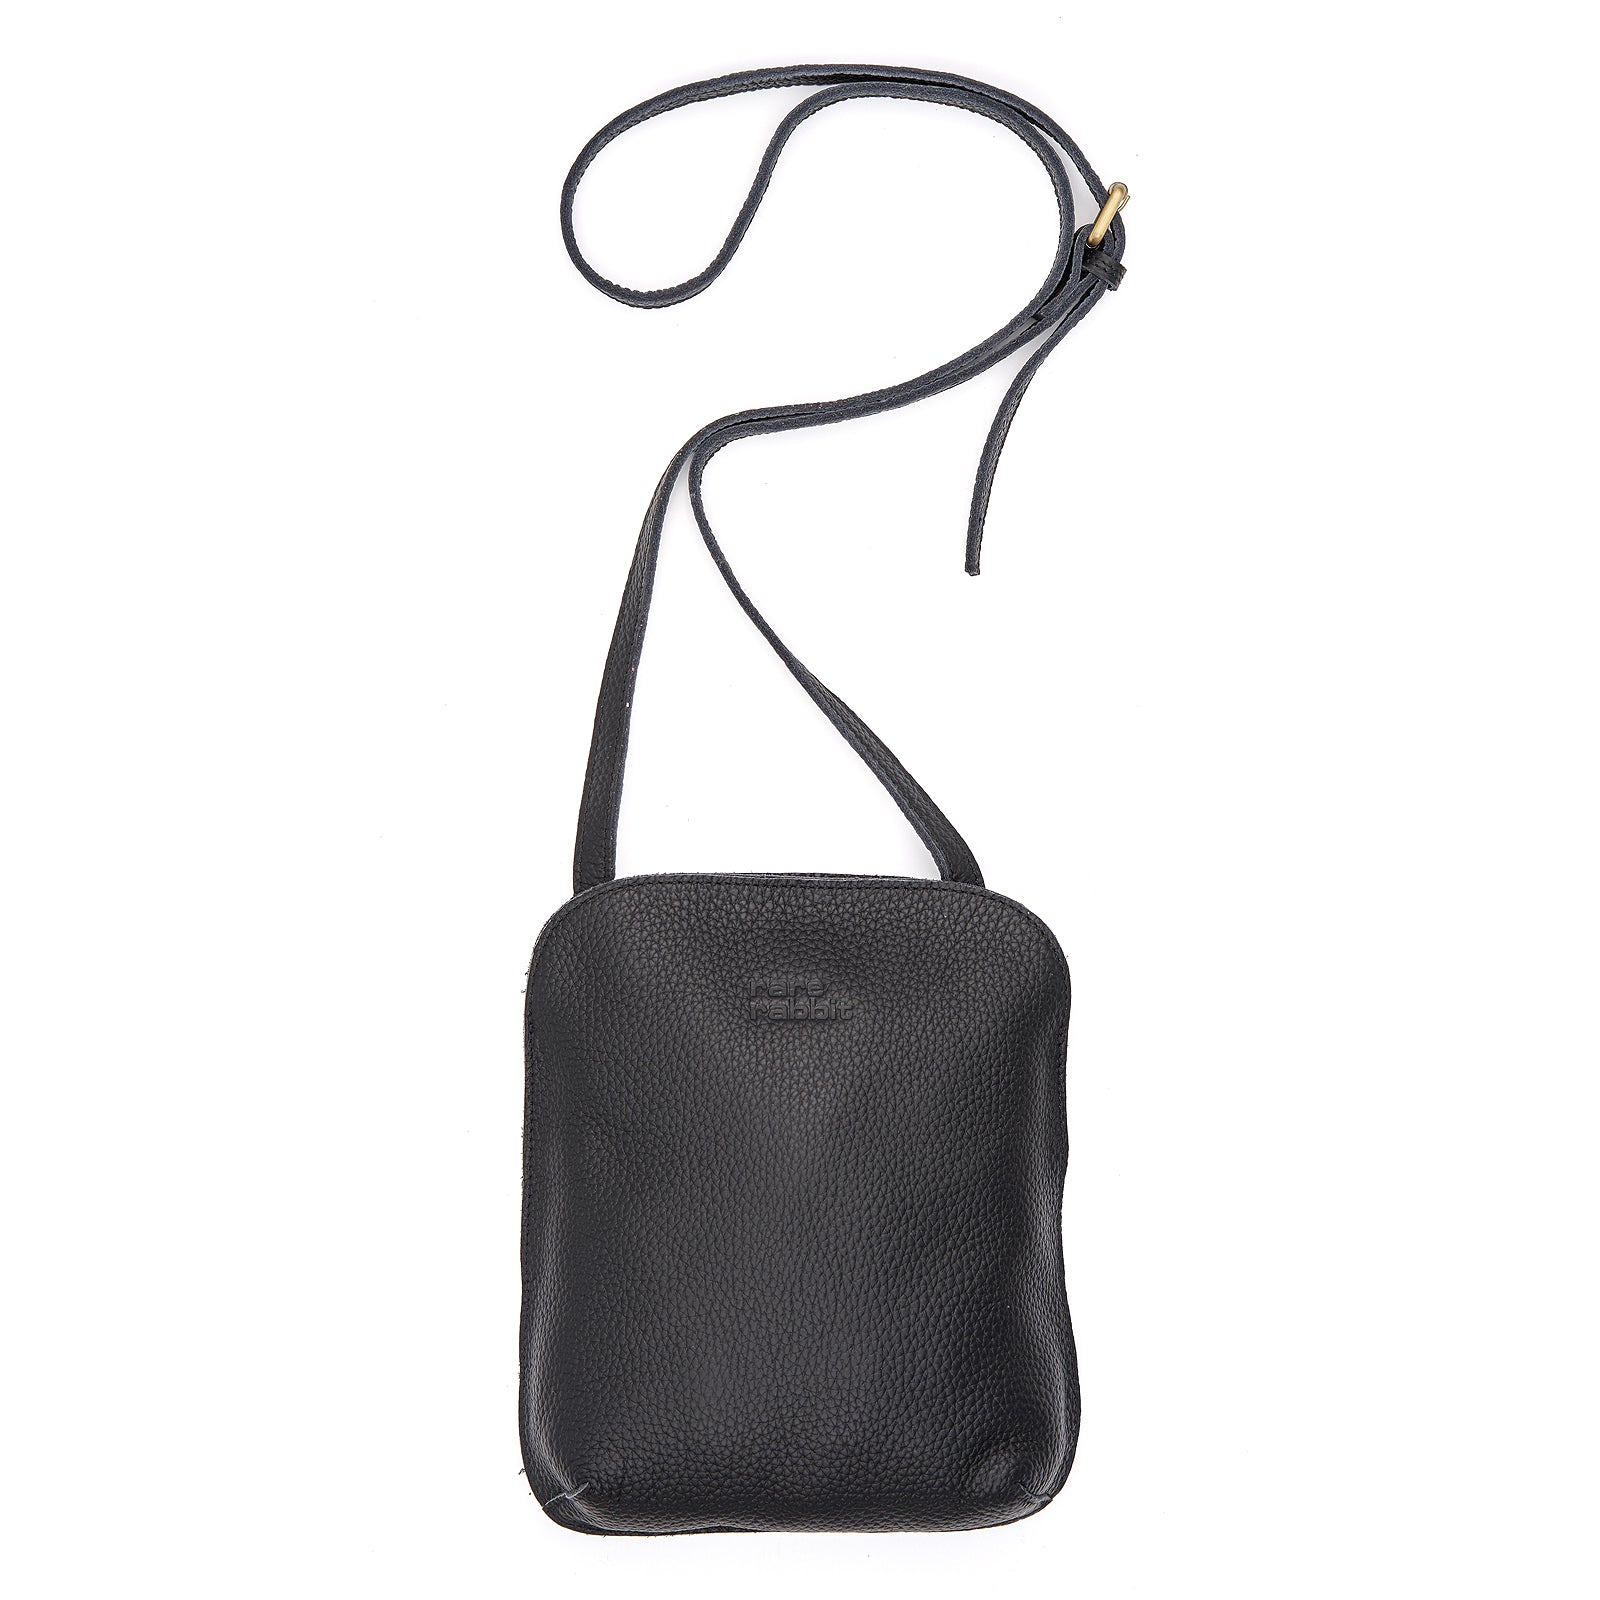 Adventurer cross body bag